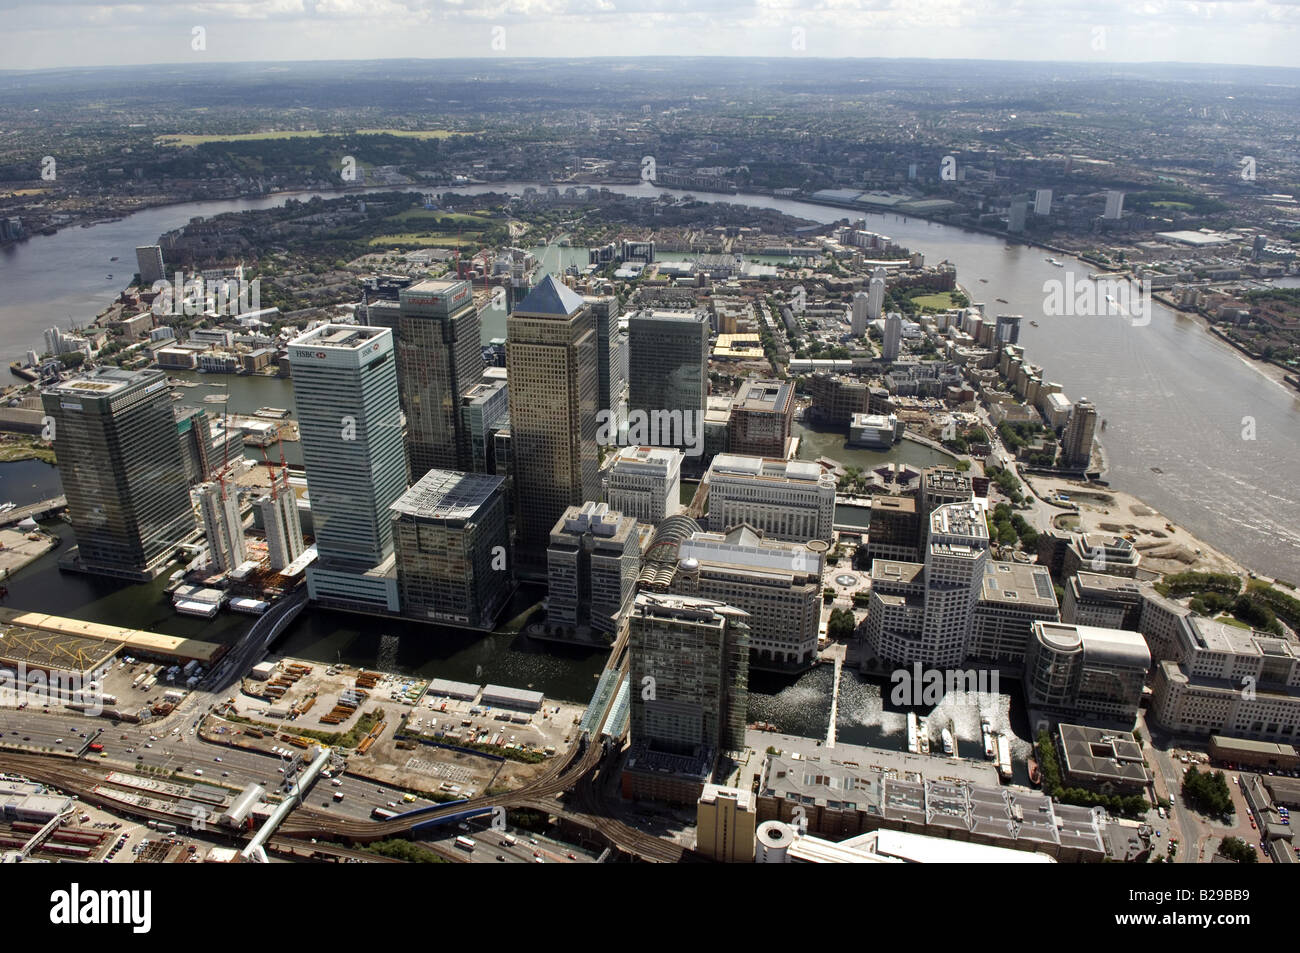 Isle of Dogs London Date 12 03 2008 Ref ZB648 111149 0041 COMPULSORY CREDIT World Pictures Photoshot - Stock Image